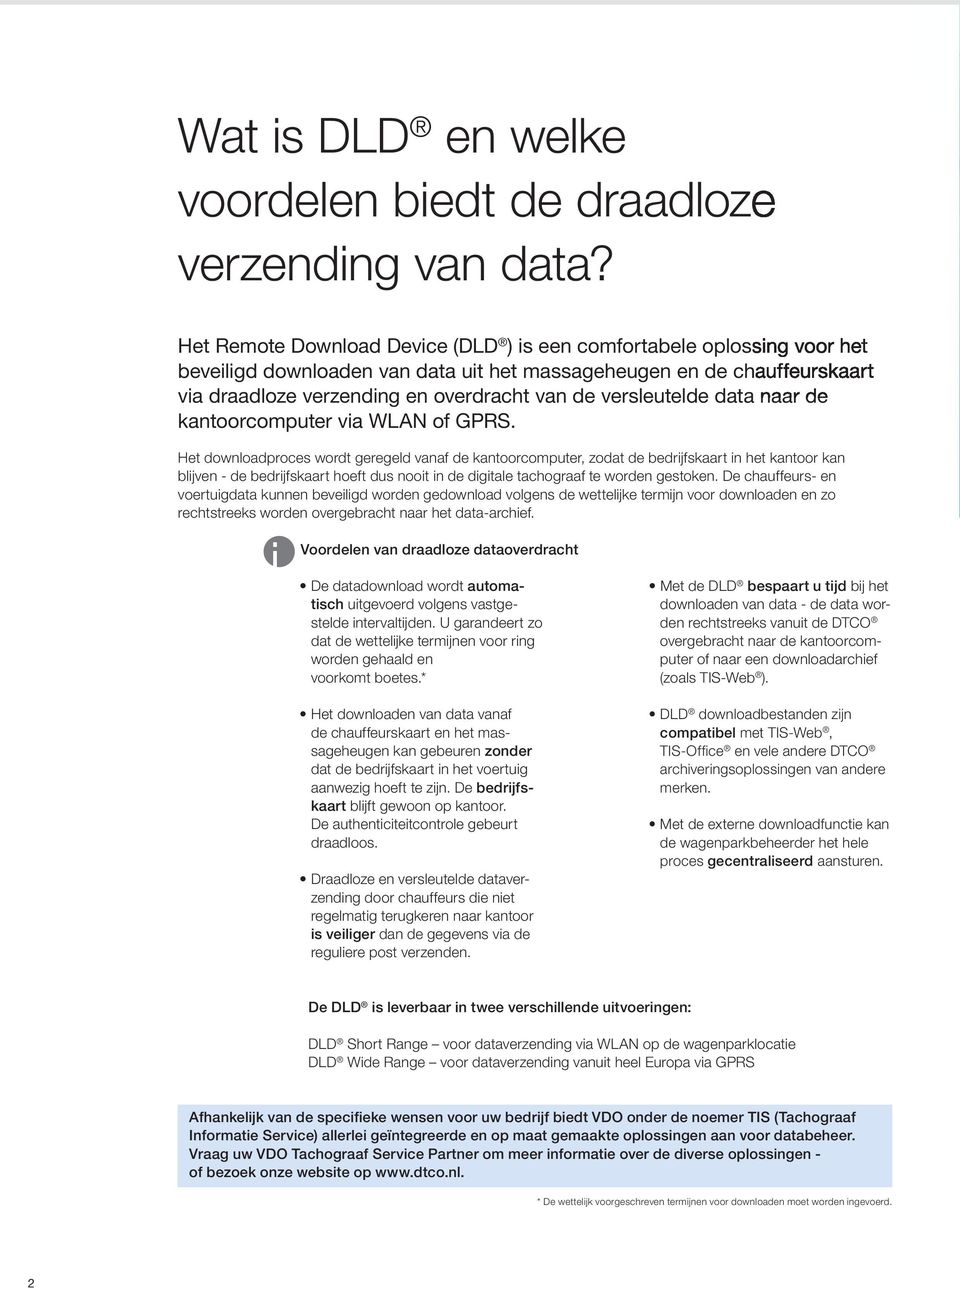 versleutelde data naar de kantoorcomputer via WLAN of GPRS.